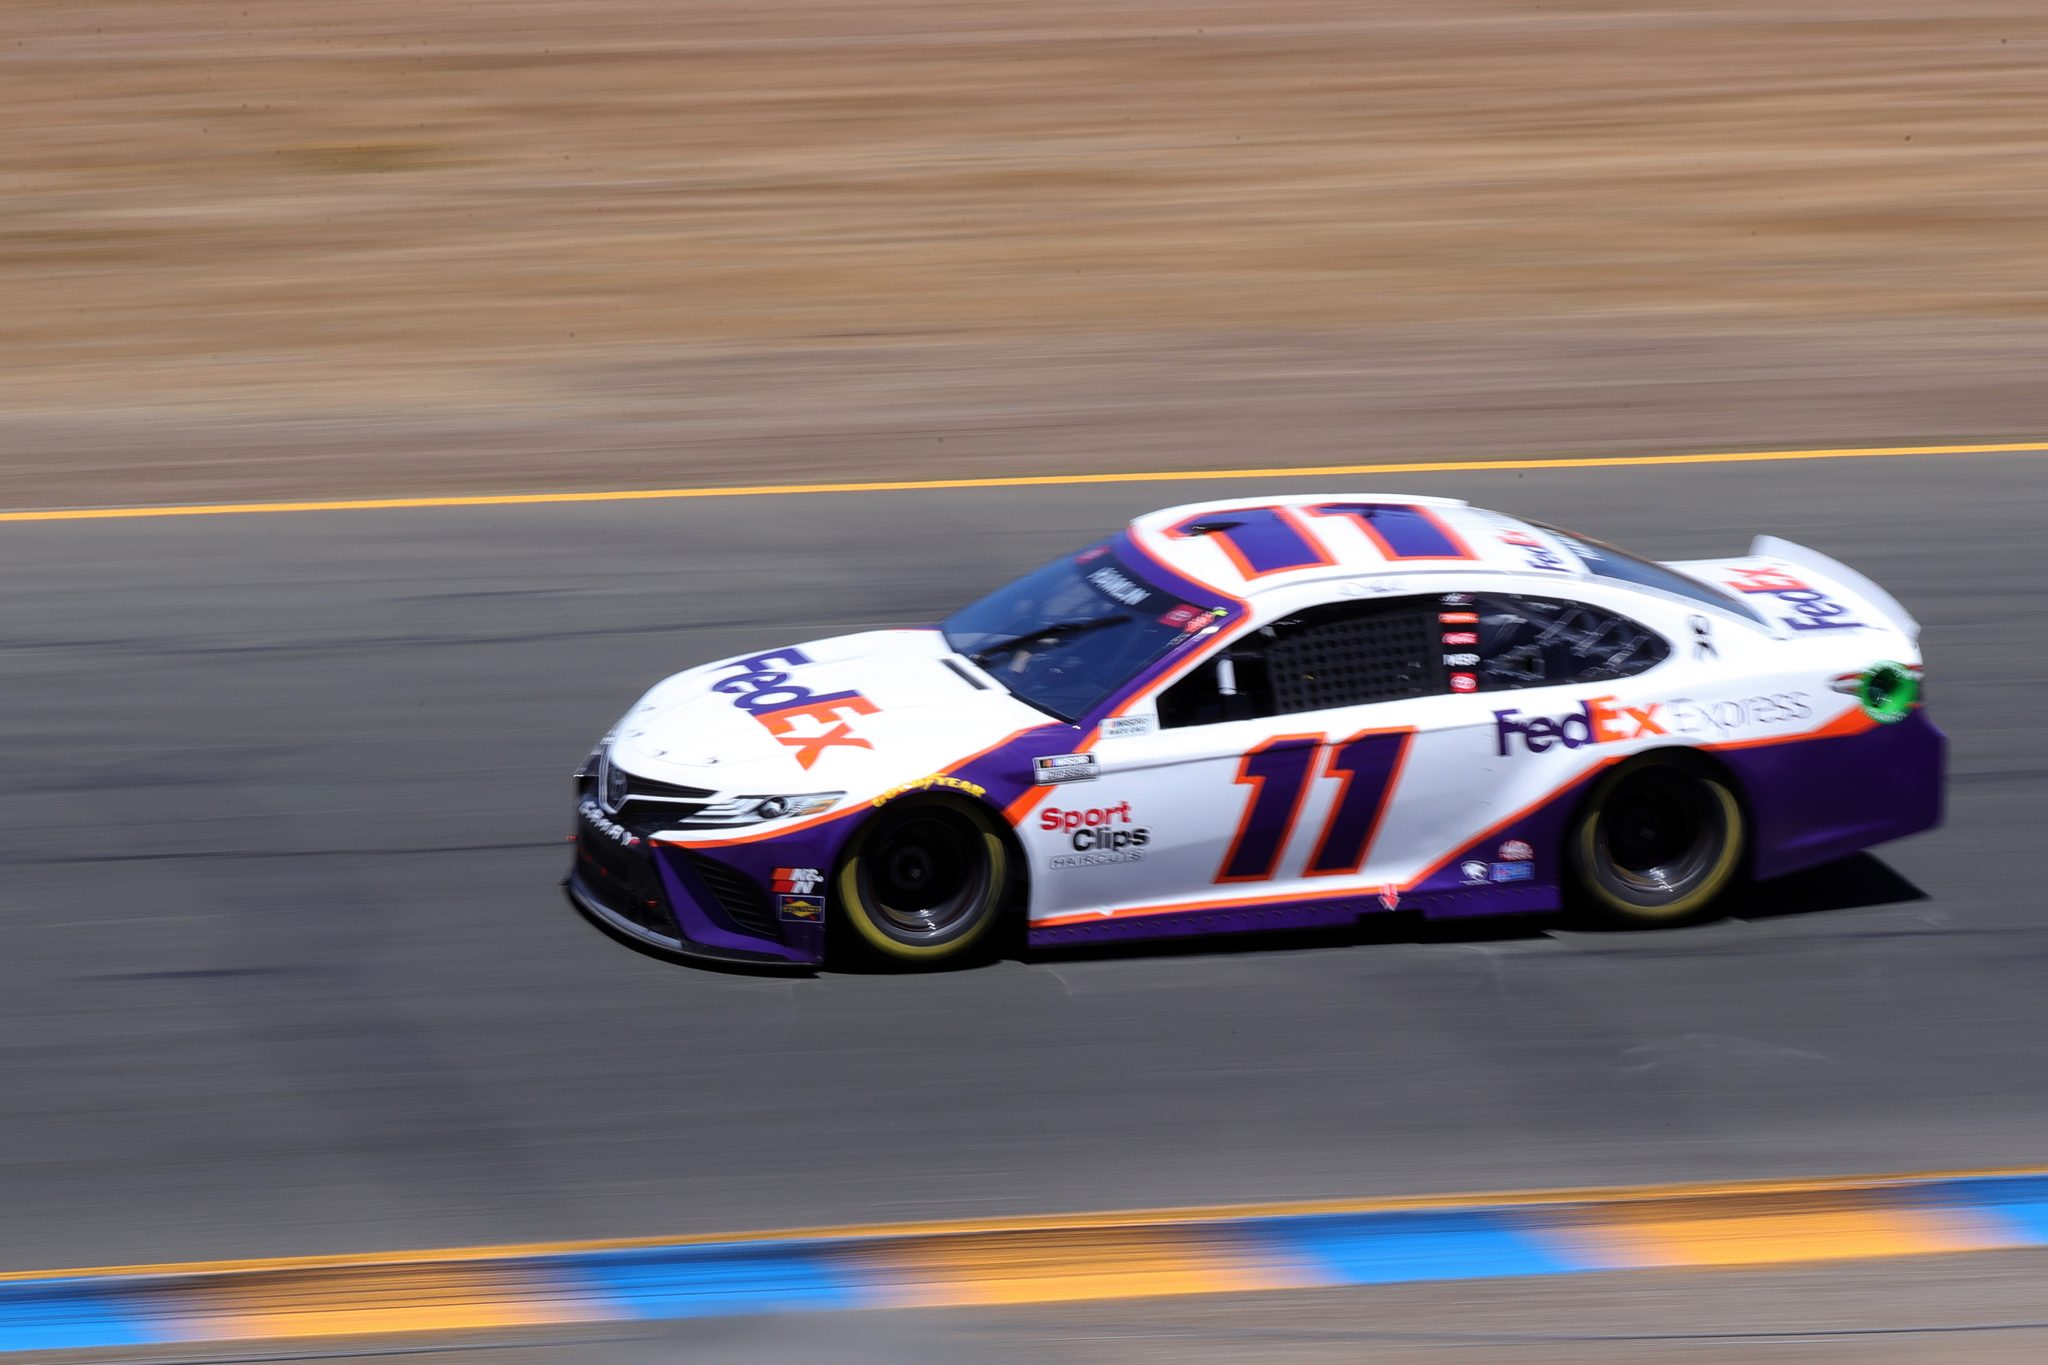 SONOMA, CALIFORNIA - JUNE 06: Denny Hamlin, driver of the #11 FedEx Express Toyota, drives during the NASCAR Cup Series Toyota/Save Mart 350 at Sonoma Raceway on June 06, 2021 in Sonoma, California. (Photo by Carmen Mandato/Getty Images) | Getty Images